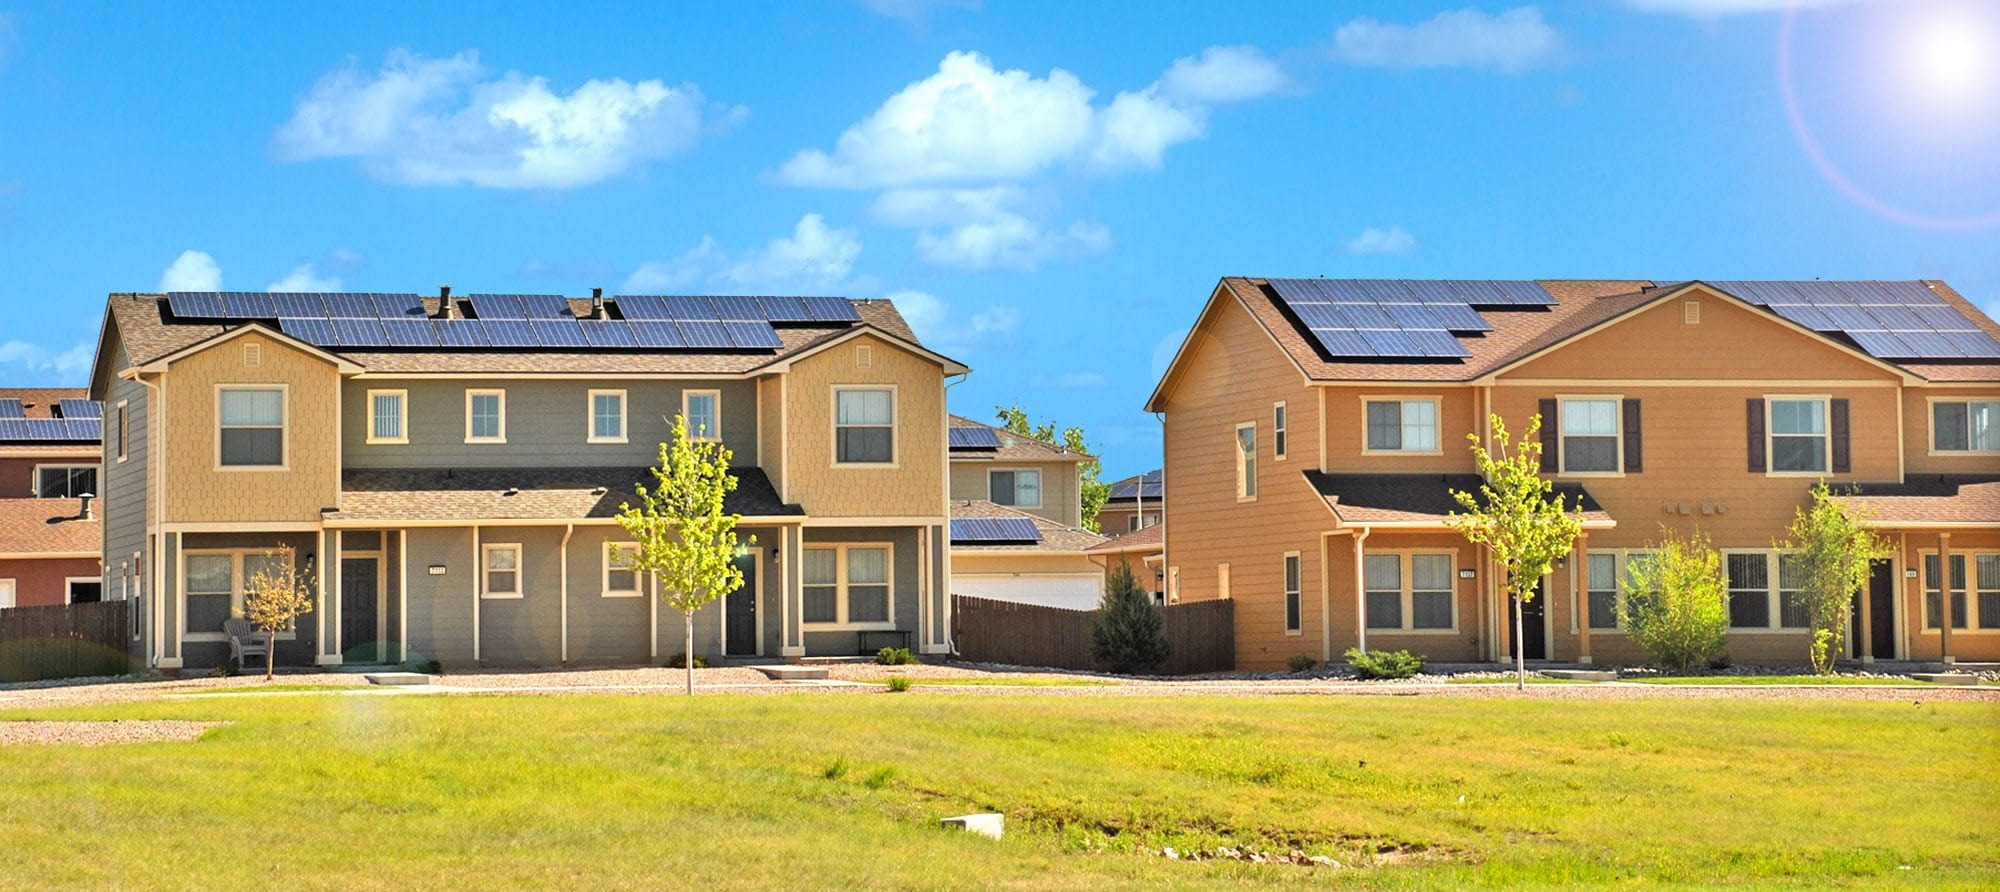 Solar Panel Installation: Working With Homeowners' Associations (HOA)